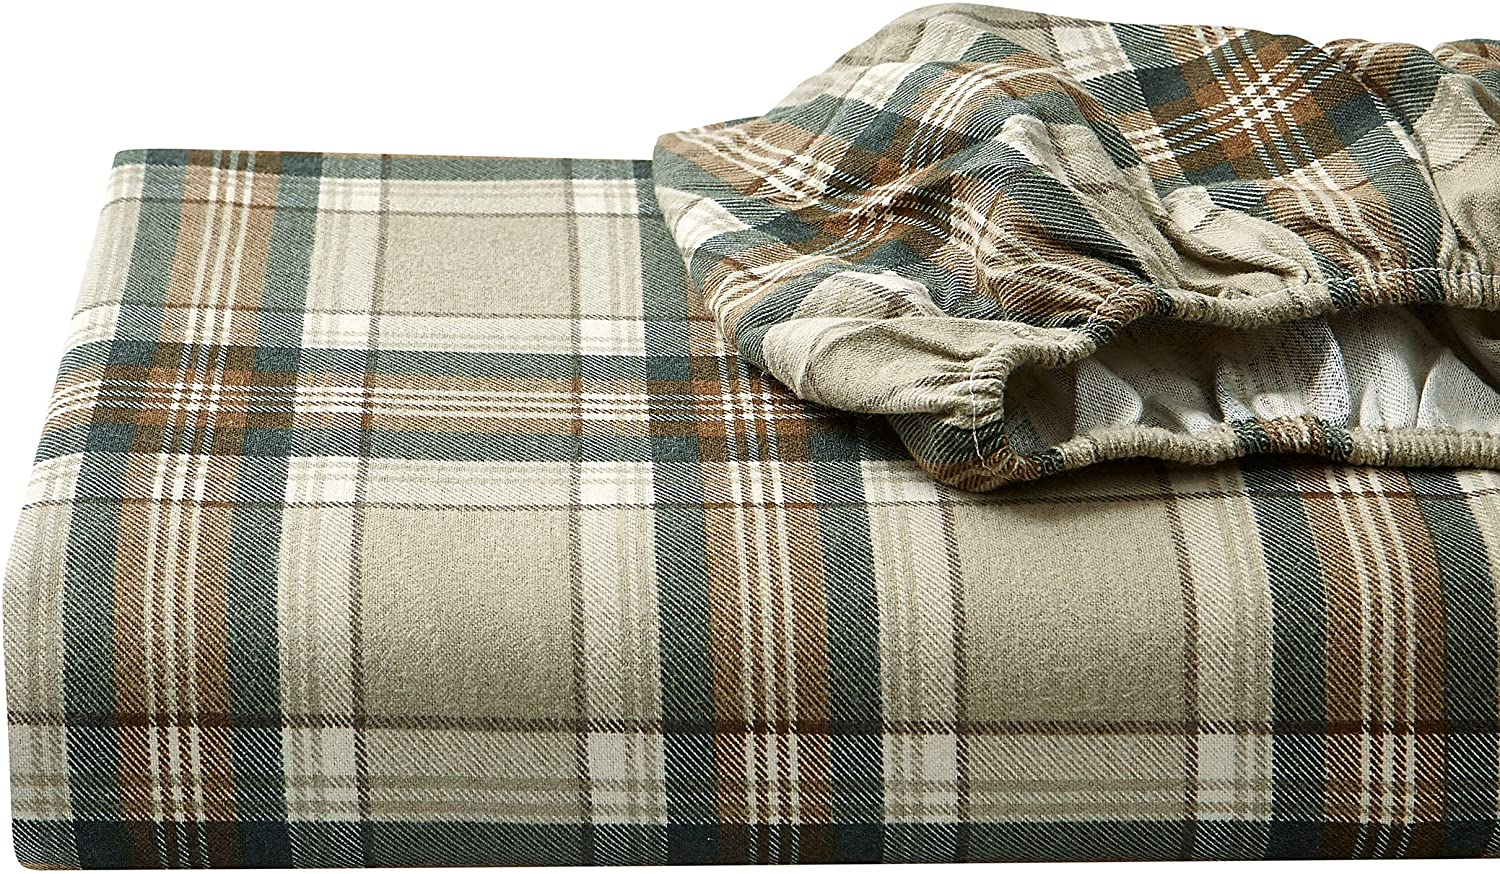 Eddie Bauer - Flannel Collection - 100% Premium Cotton Bedding Sheet Set, Pre-Shrunk & Brushed For Extra Softness, Comfort, and Cozy Feel, Twin, Edgewood Plaid